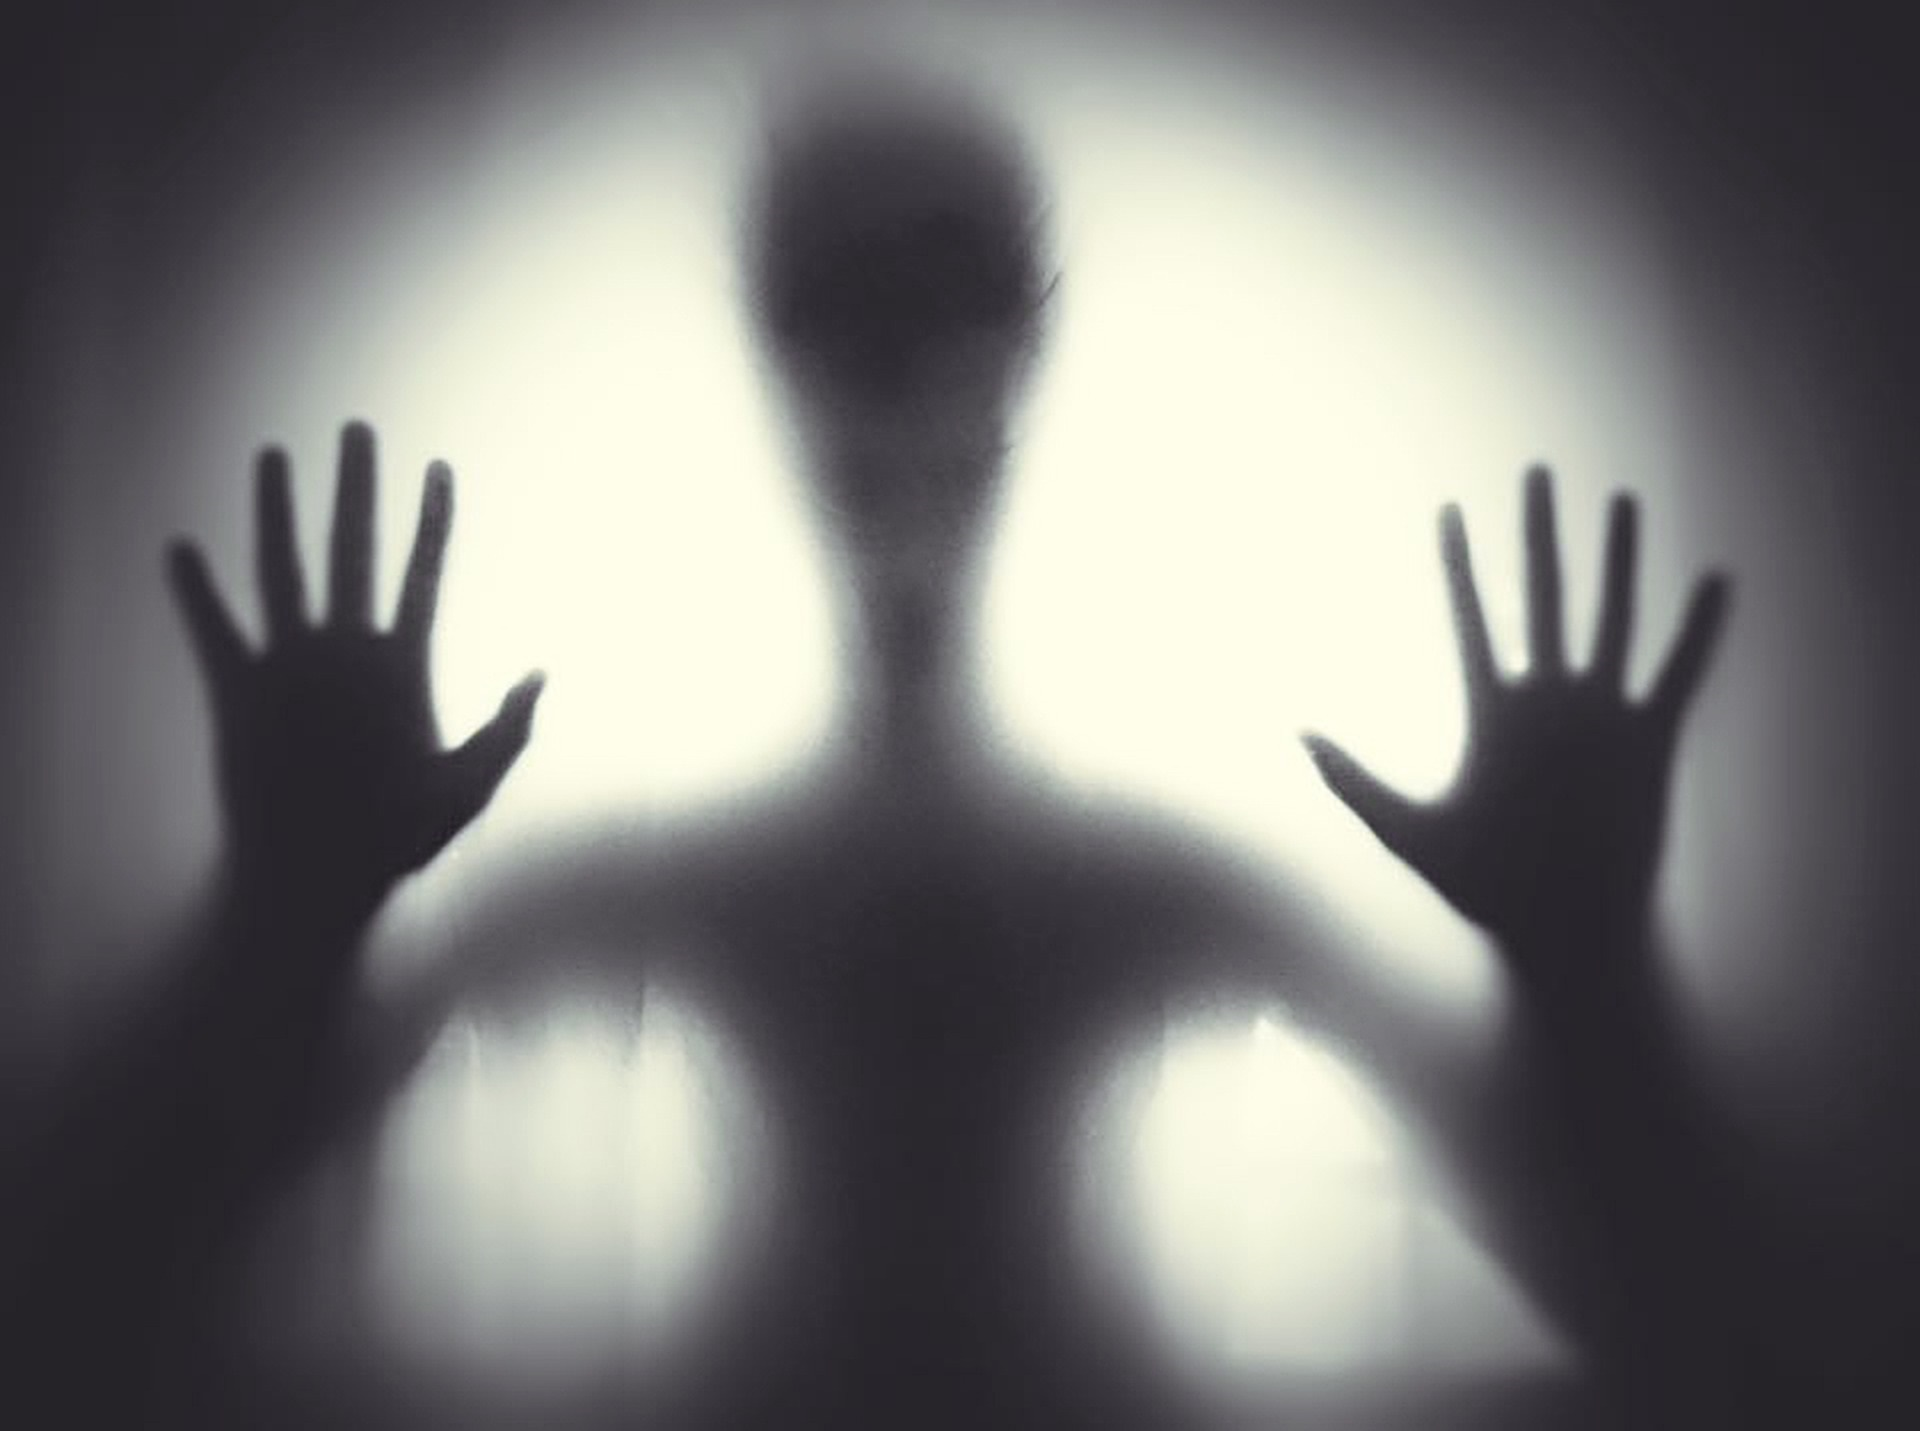 A silhouette of a person with their hands on the screen is illuminated ominously